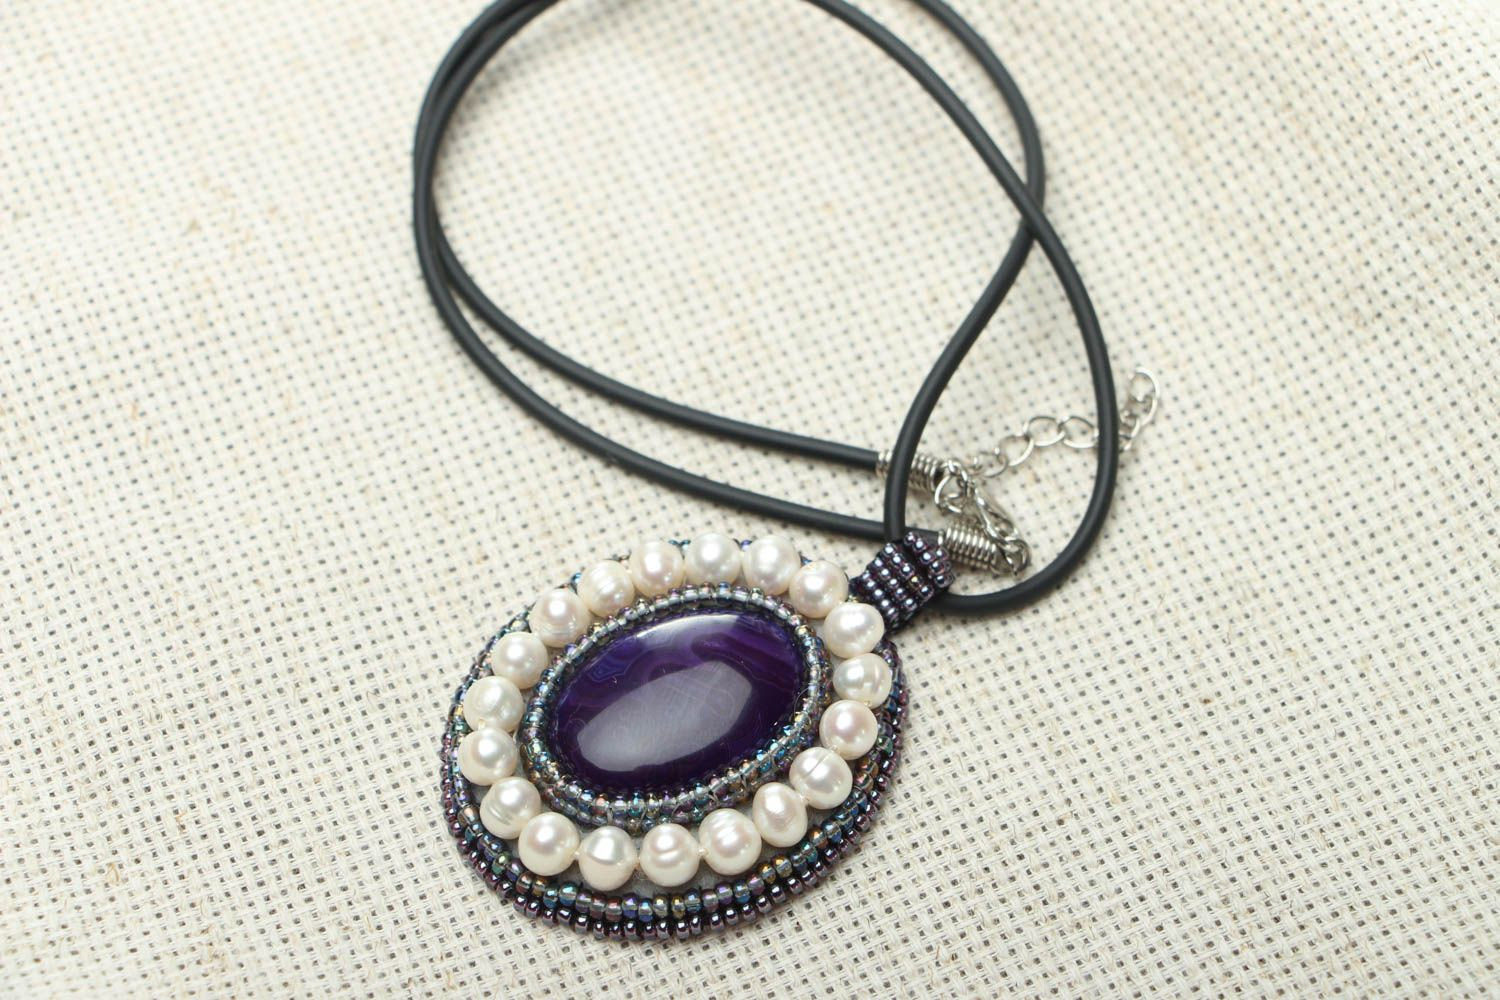 Homemade pendant with amethyst and pearls photo 1